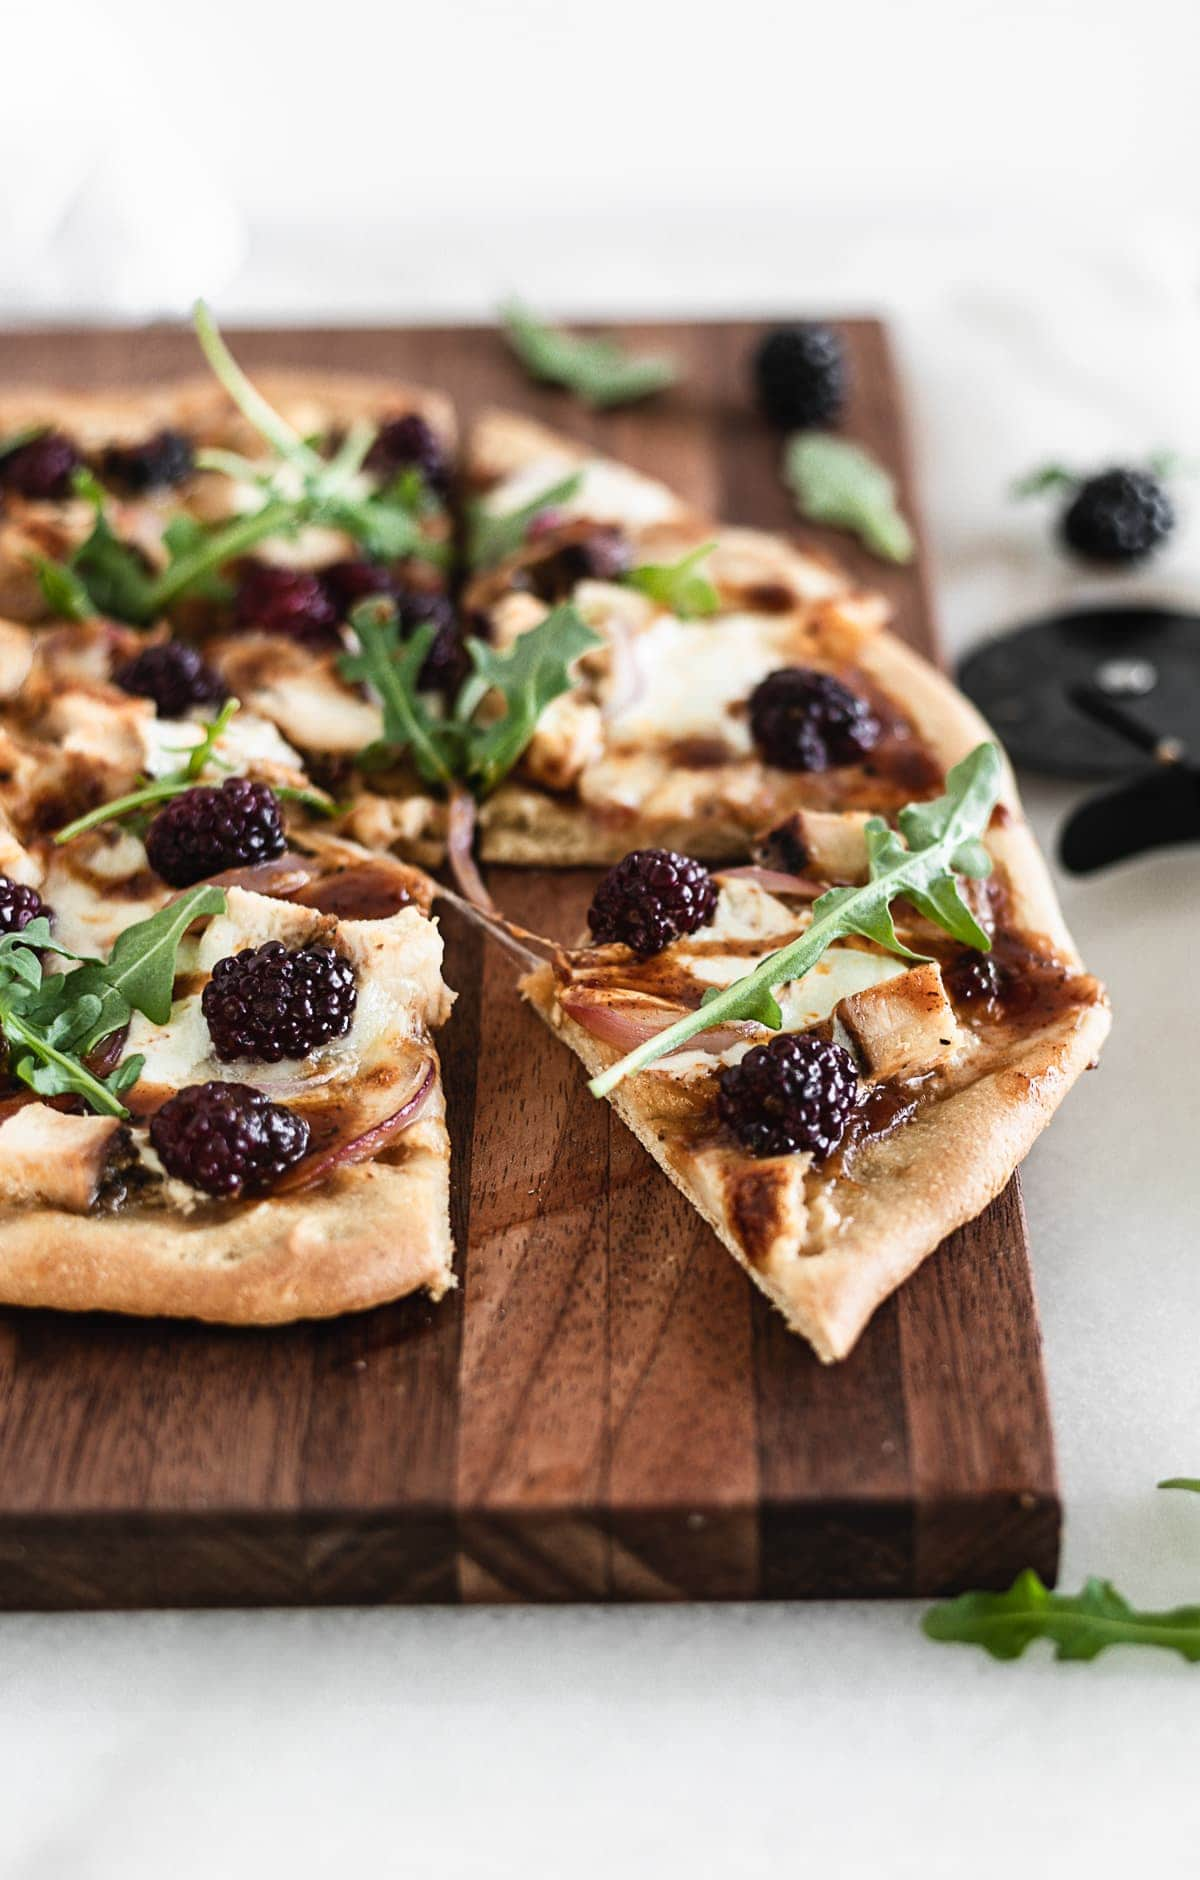 This Blackberry Chicken Flatbread has tender grilled chicken, creamy burrata, shaved fennel and juicy blackberries for a delicious summer pizza night change up!